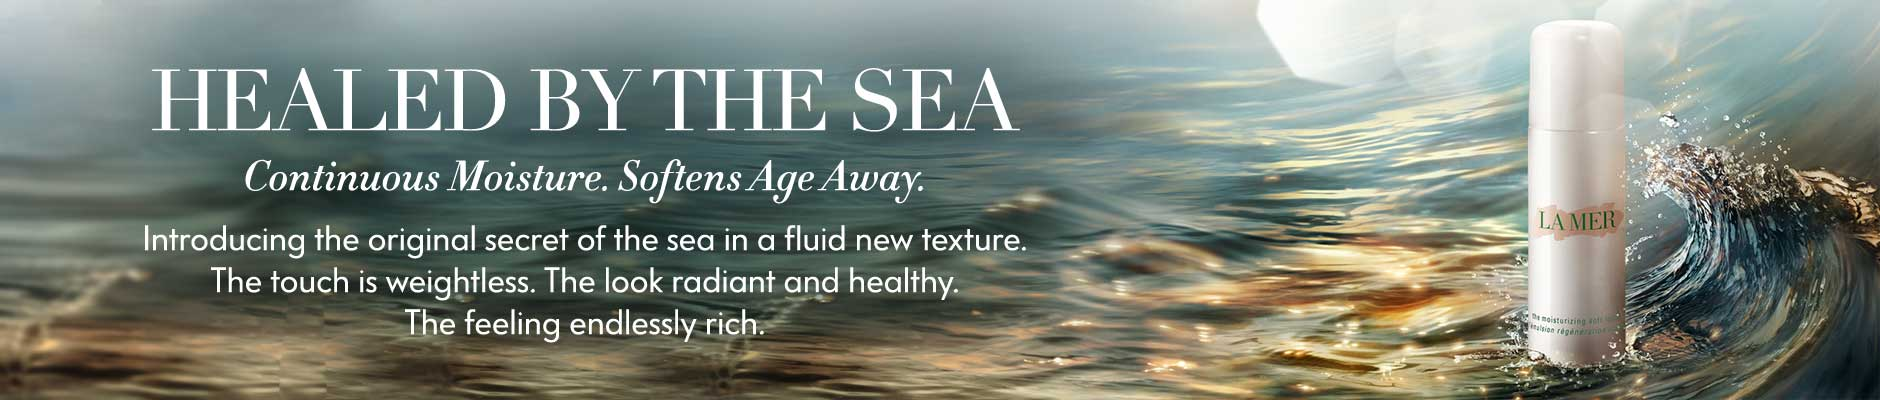 Healed By The Sea: Continuous Moisture. Softens Age Away. - Introducing the original secret of the sea in a fluid new texture. The touch is weightless. The look radiant and health. The feeling endlessly rich.